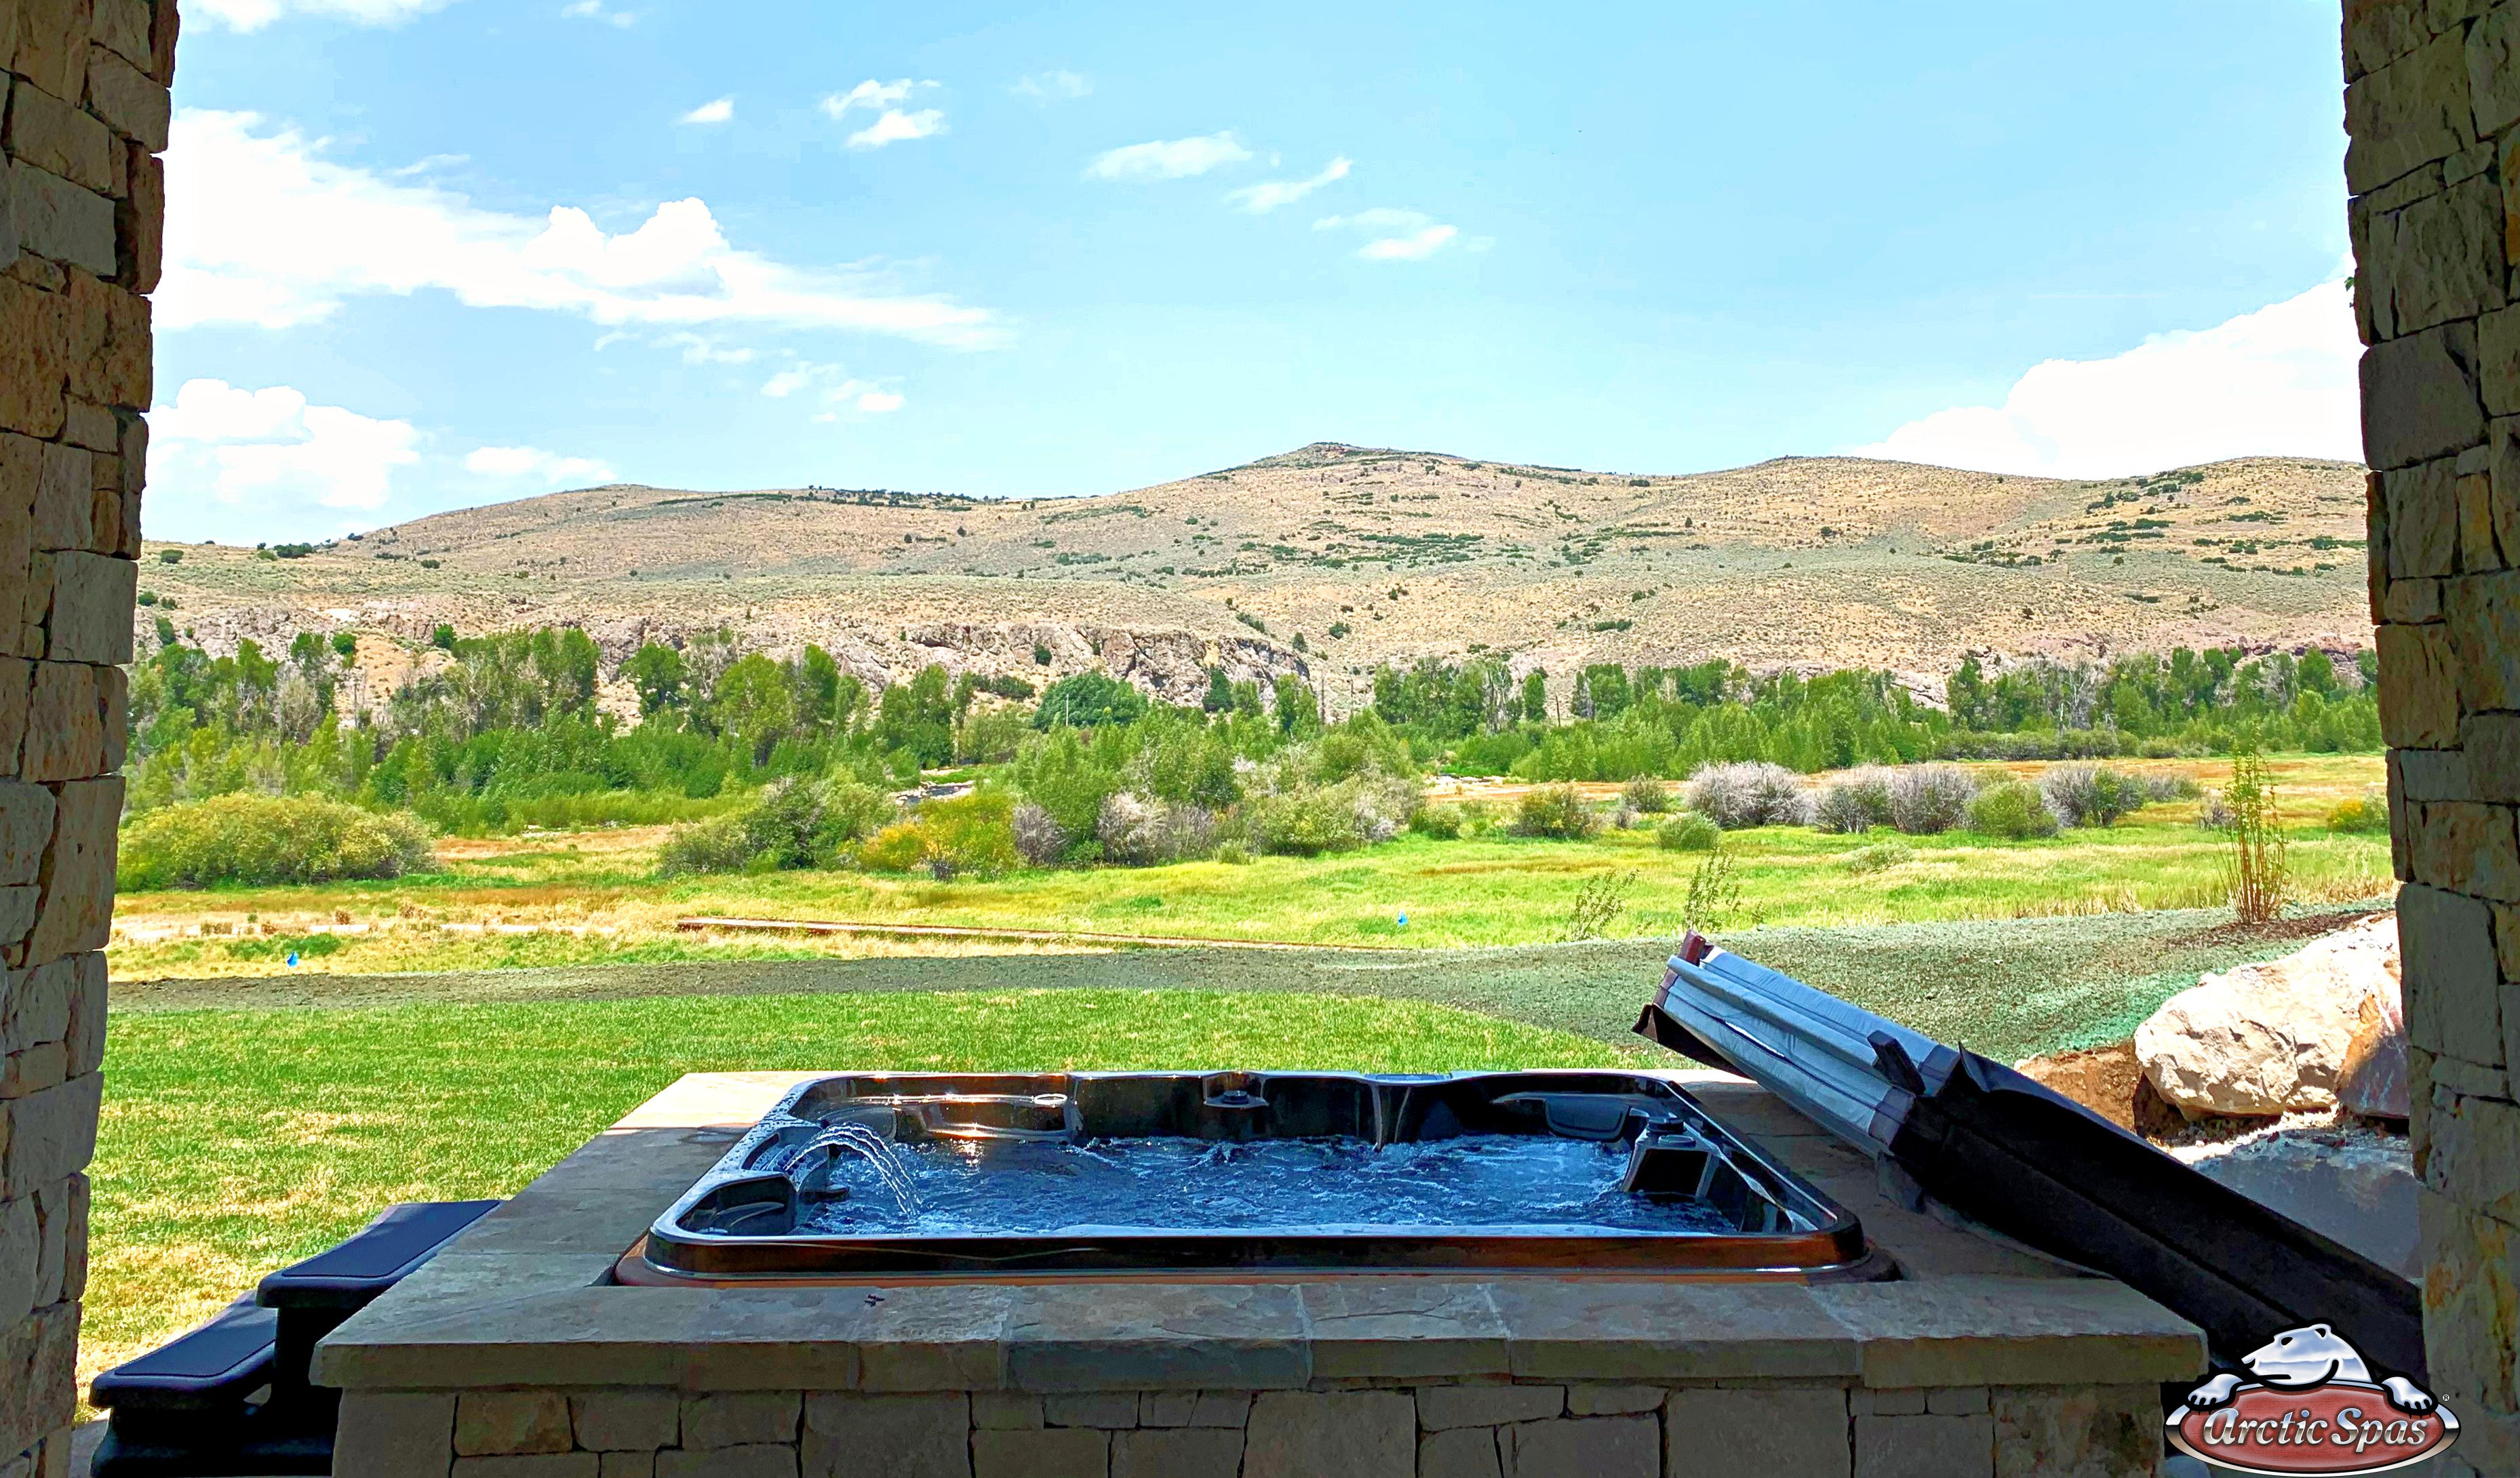 If you're looking for that something extra, this SummitXL will do it!   #ArcticSpasUtah #ArcticSpas #arctic #spas #spa #hottub #hottubs #pool #pools #summitxl #utah #utahhomes #outdoors #relax #patio #newhome